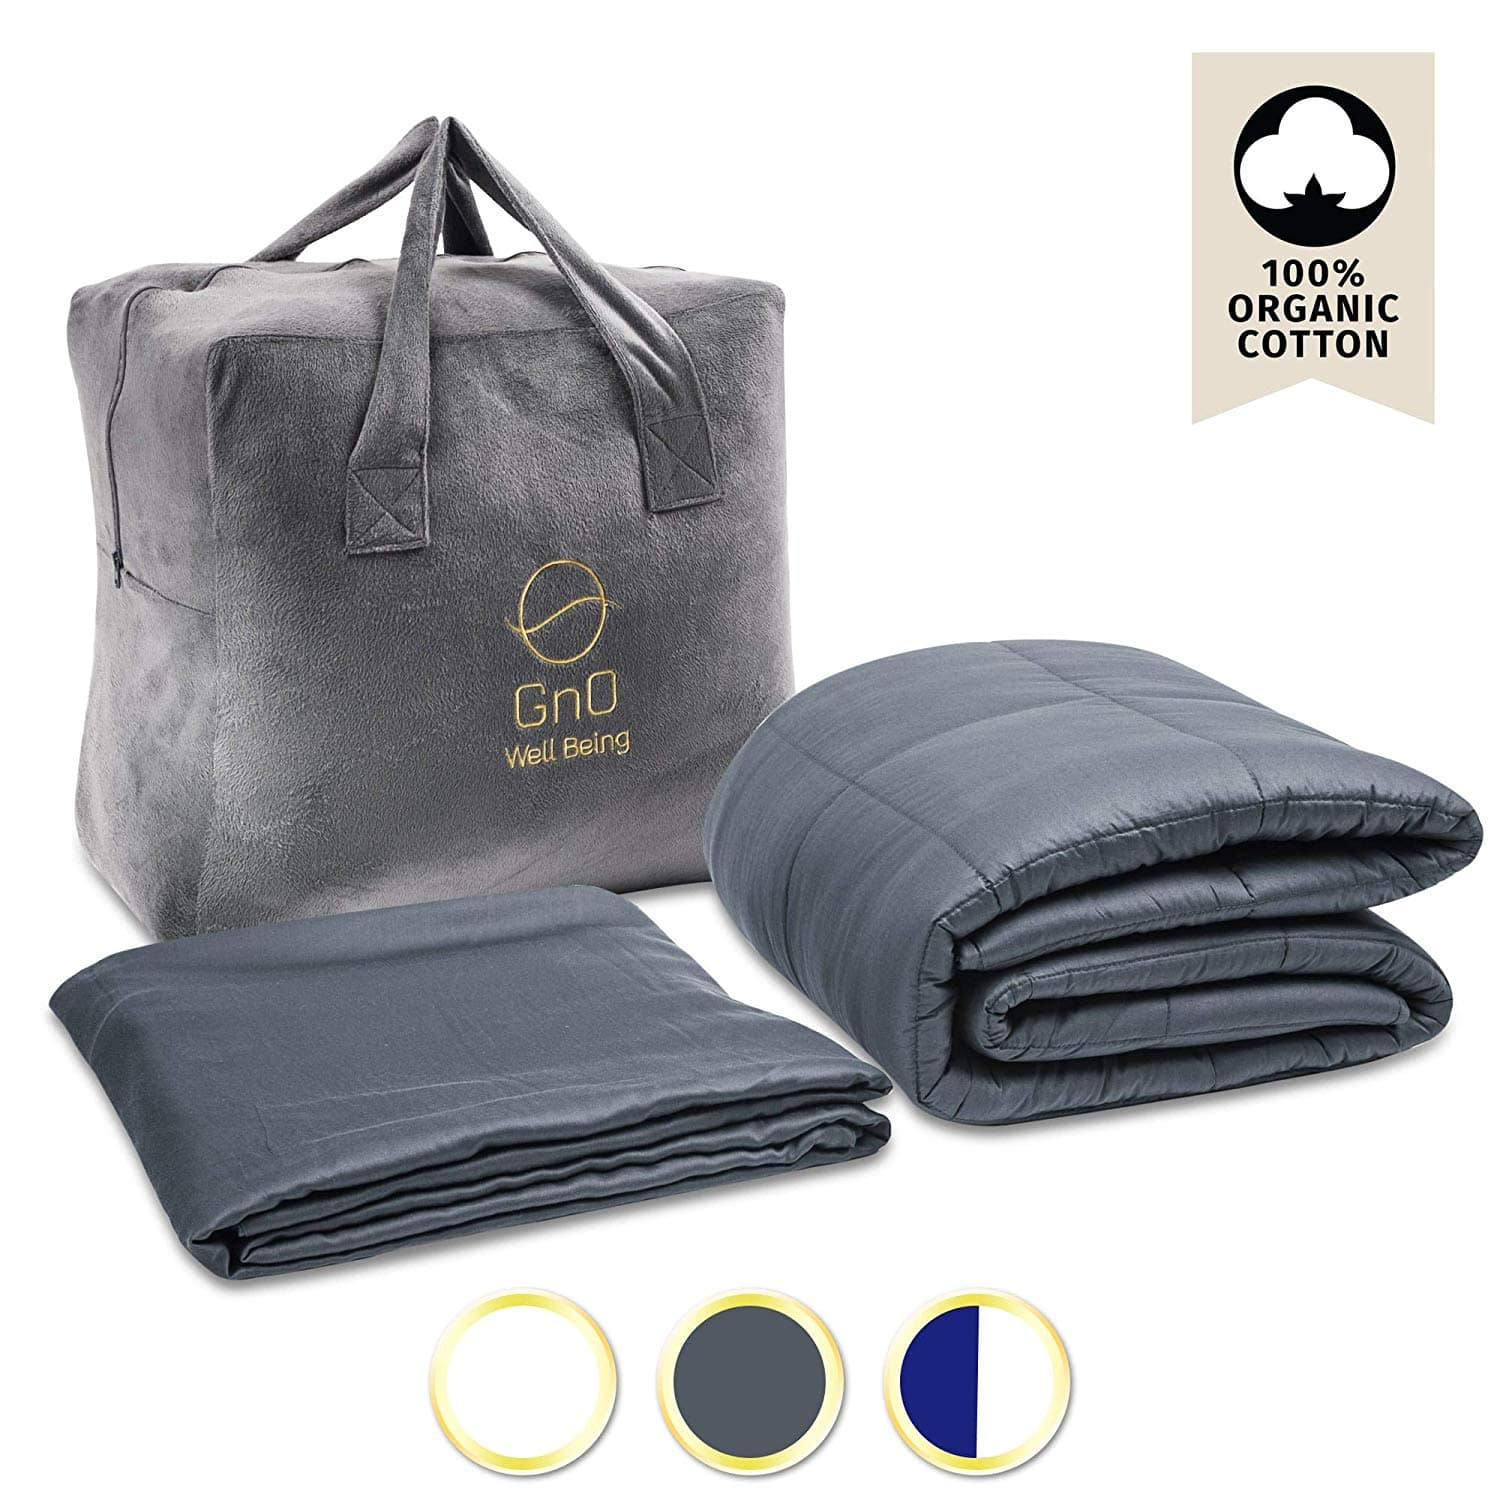 GnO Weighted Blanket 25% off ( Queen size normal price $119- now $89.25)